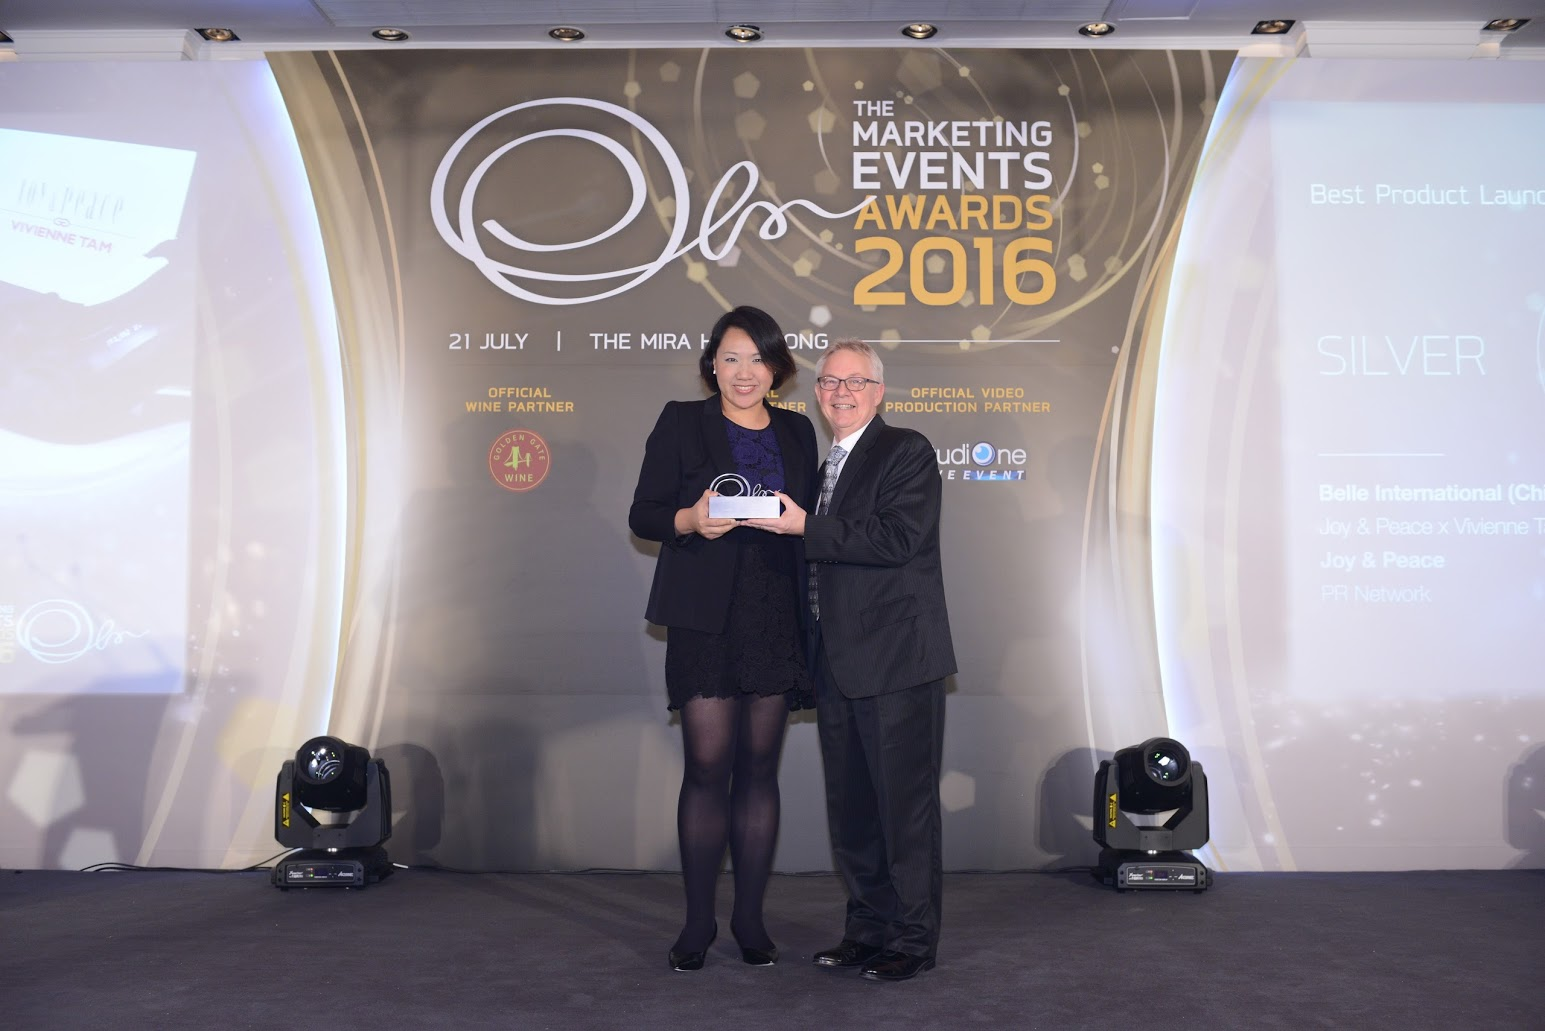 JOY & PEACE recognized at The Marketing Events Awards 2016